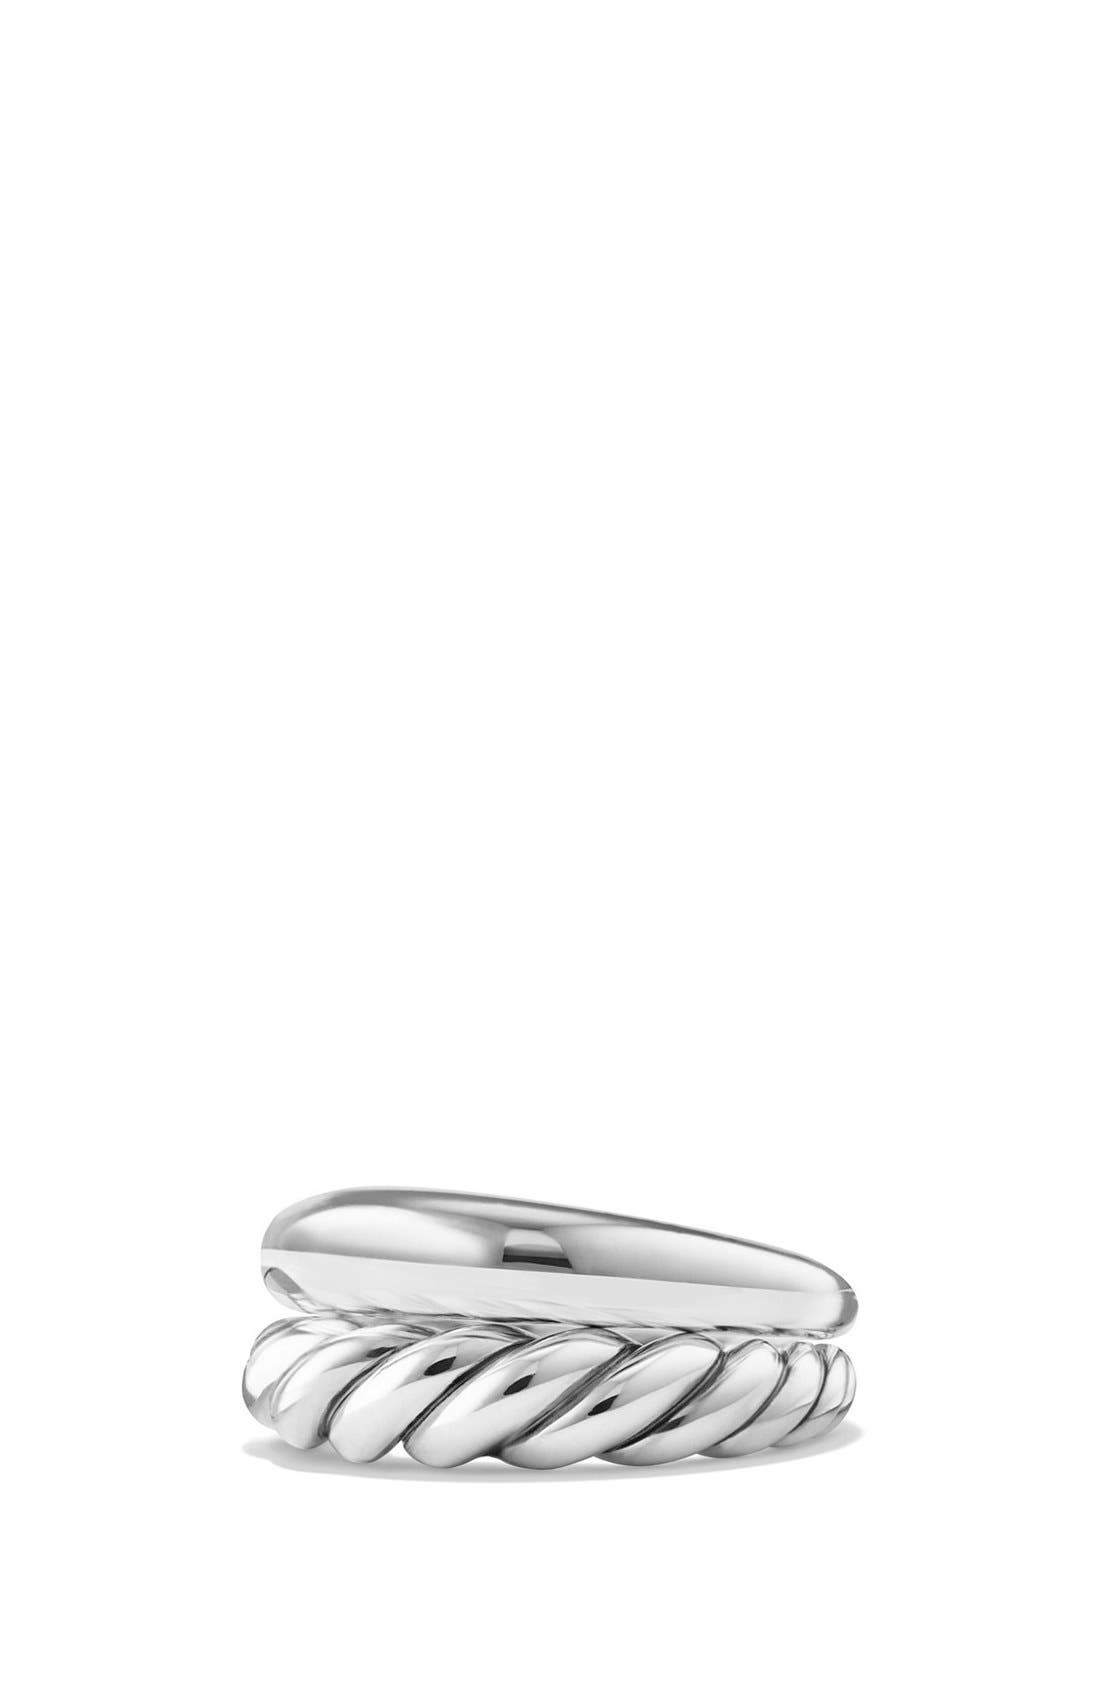 Main Image - David Yurman 'Pure Form' Sterling Silver Stacking Rings (Set of 2)